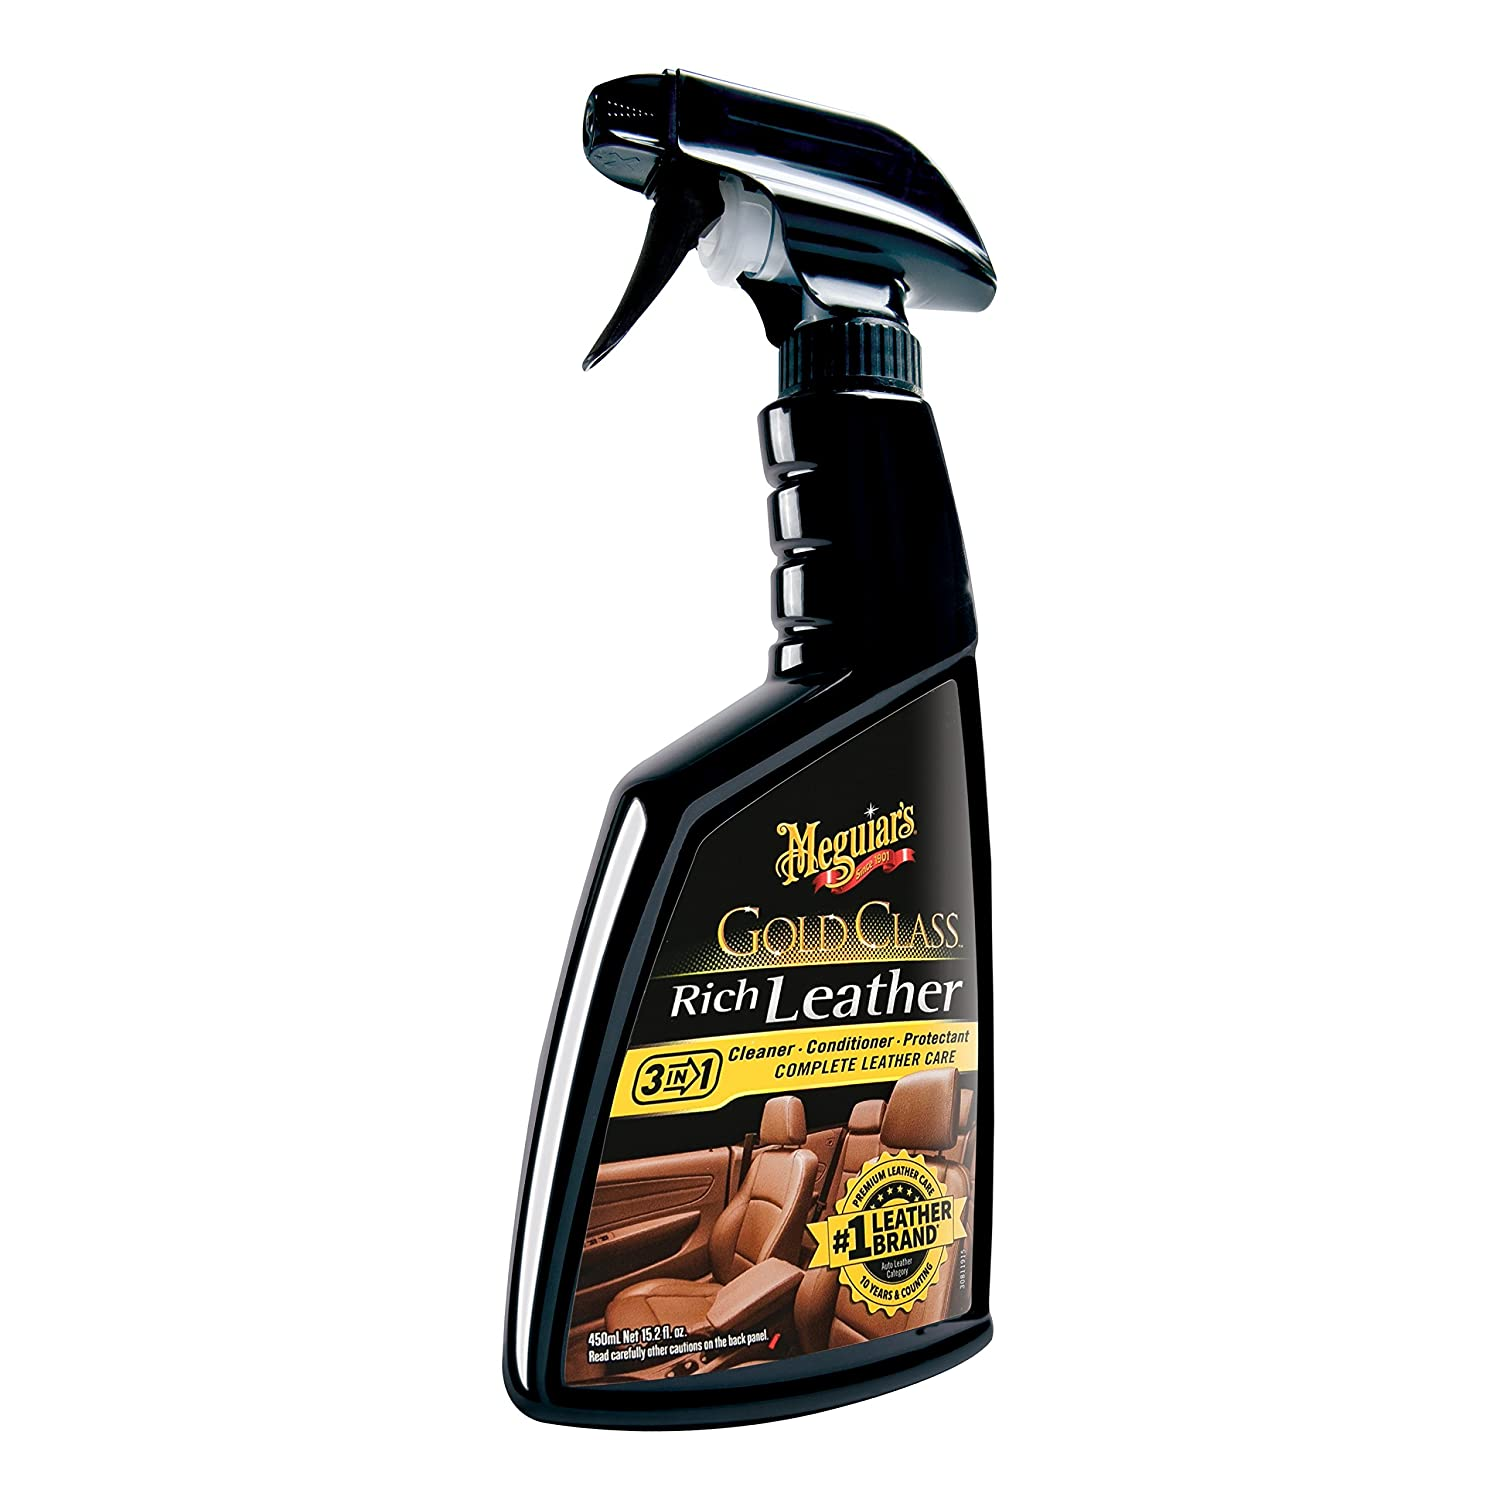 Top 10 Best Leather Conditioners for Cars Reviews in 2020 5